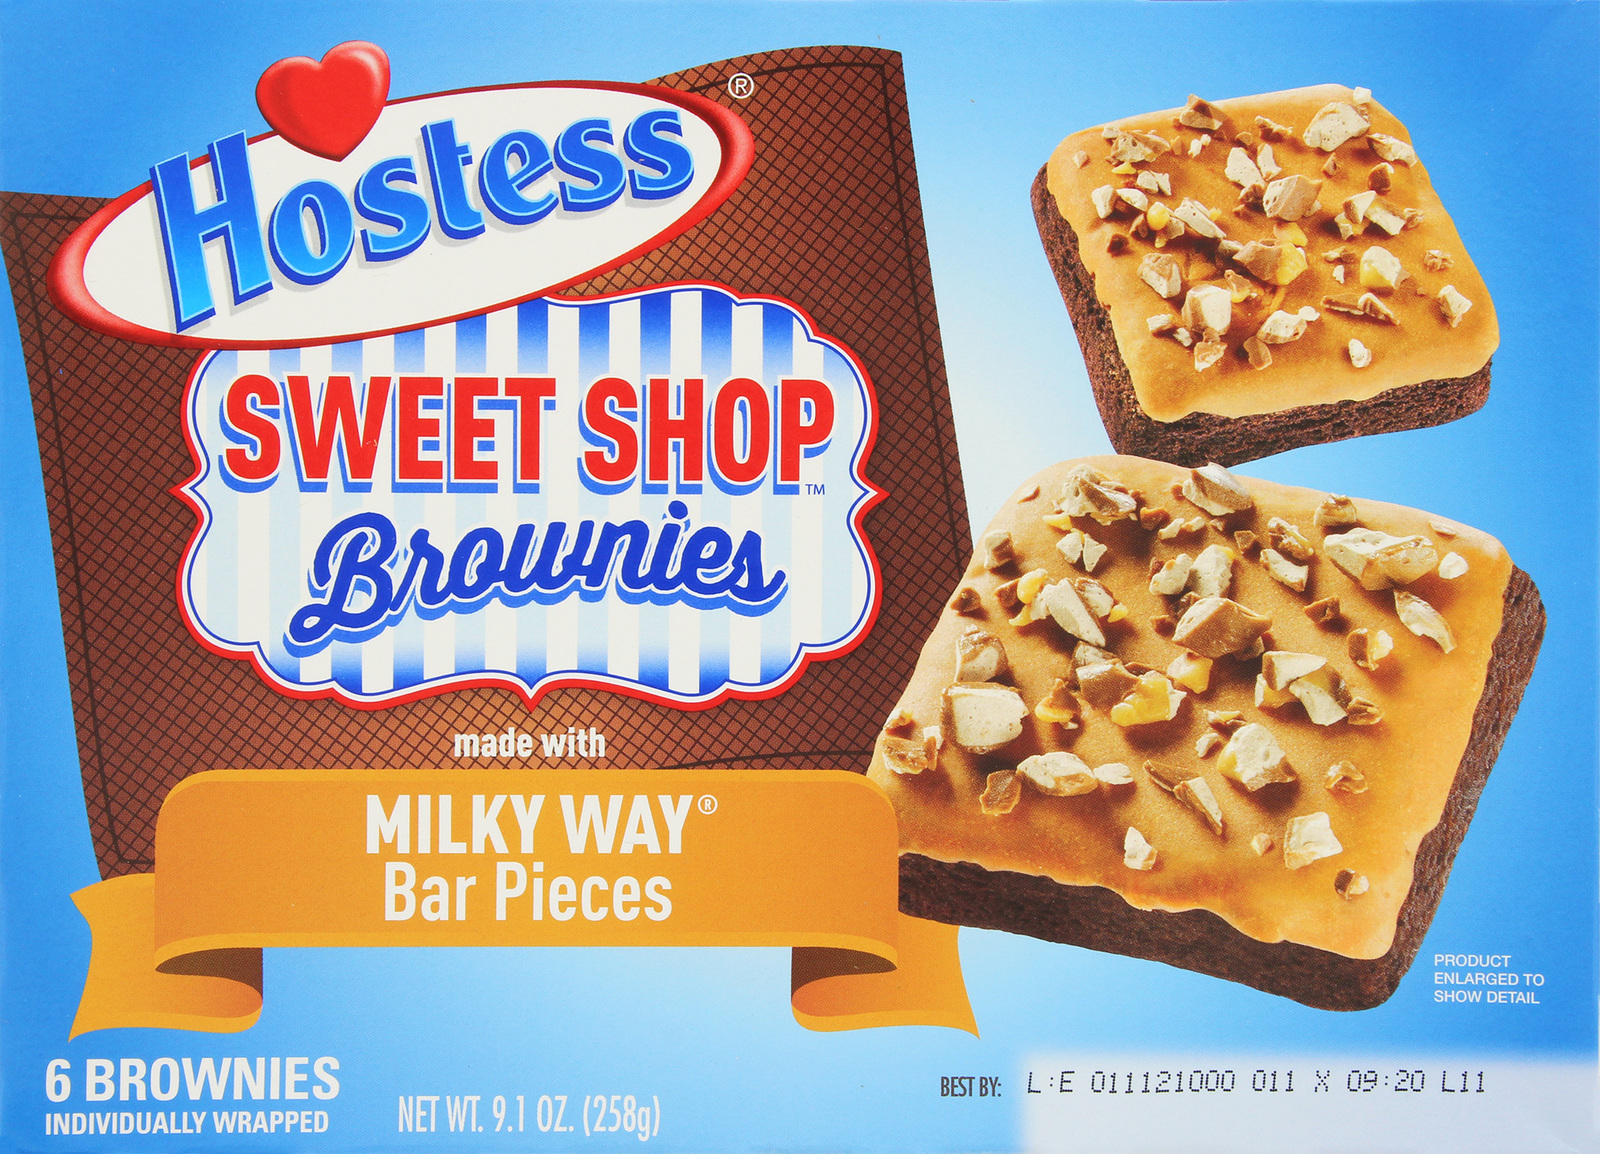 Hostess Sweet Shop Brownies with Milky Way 6pk image